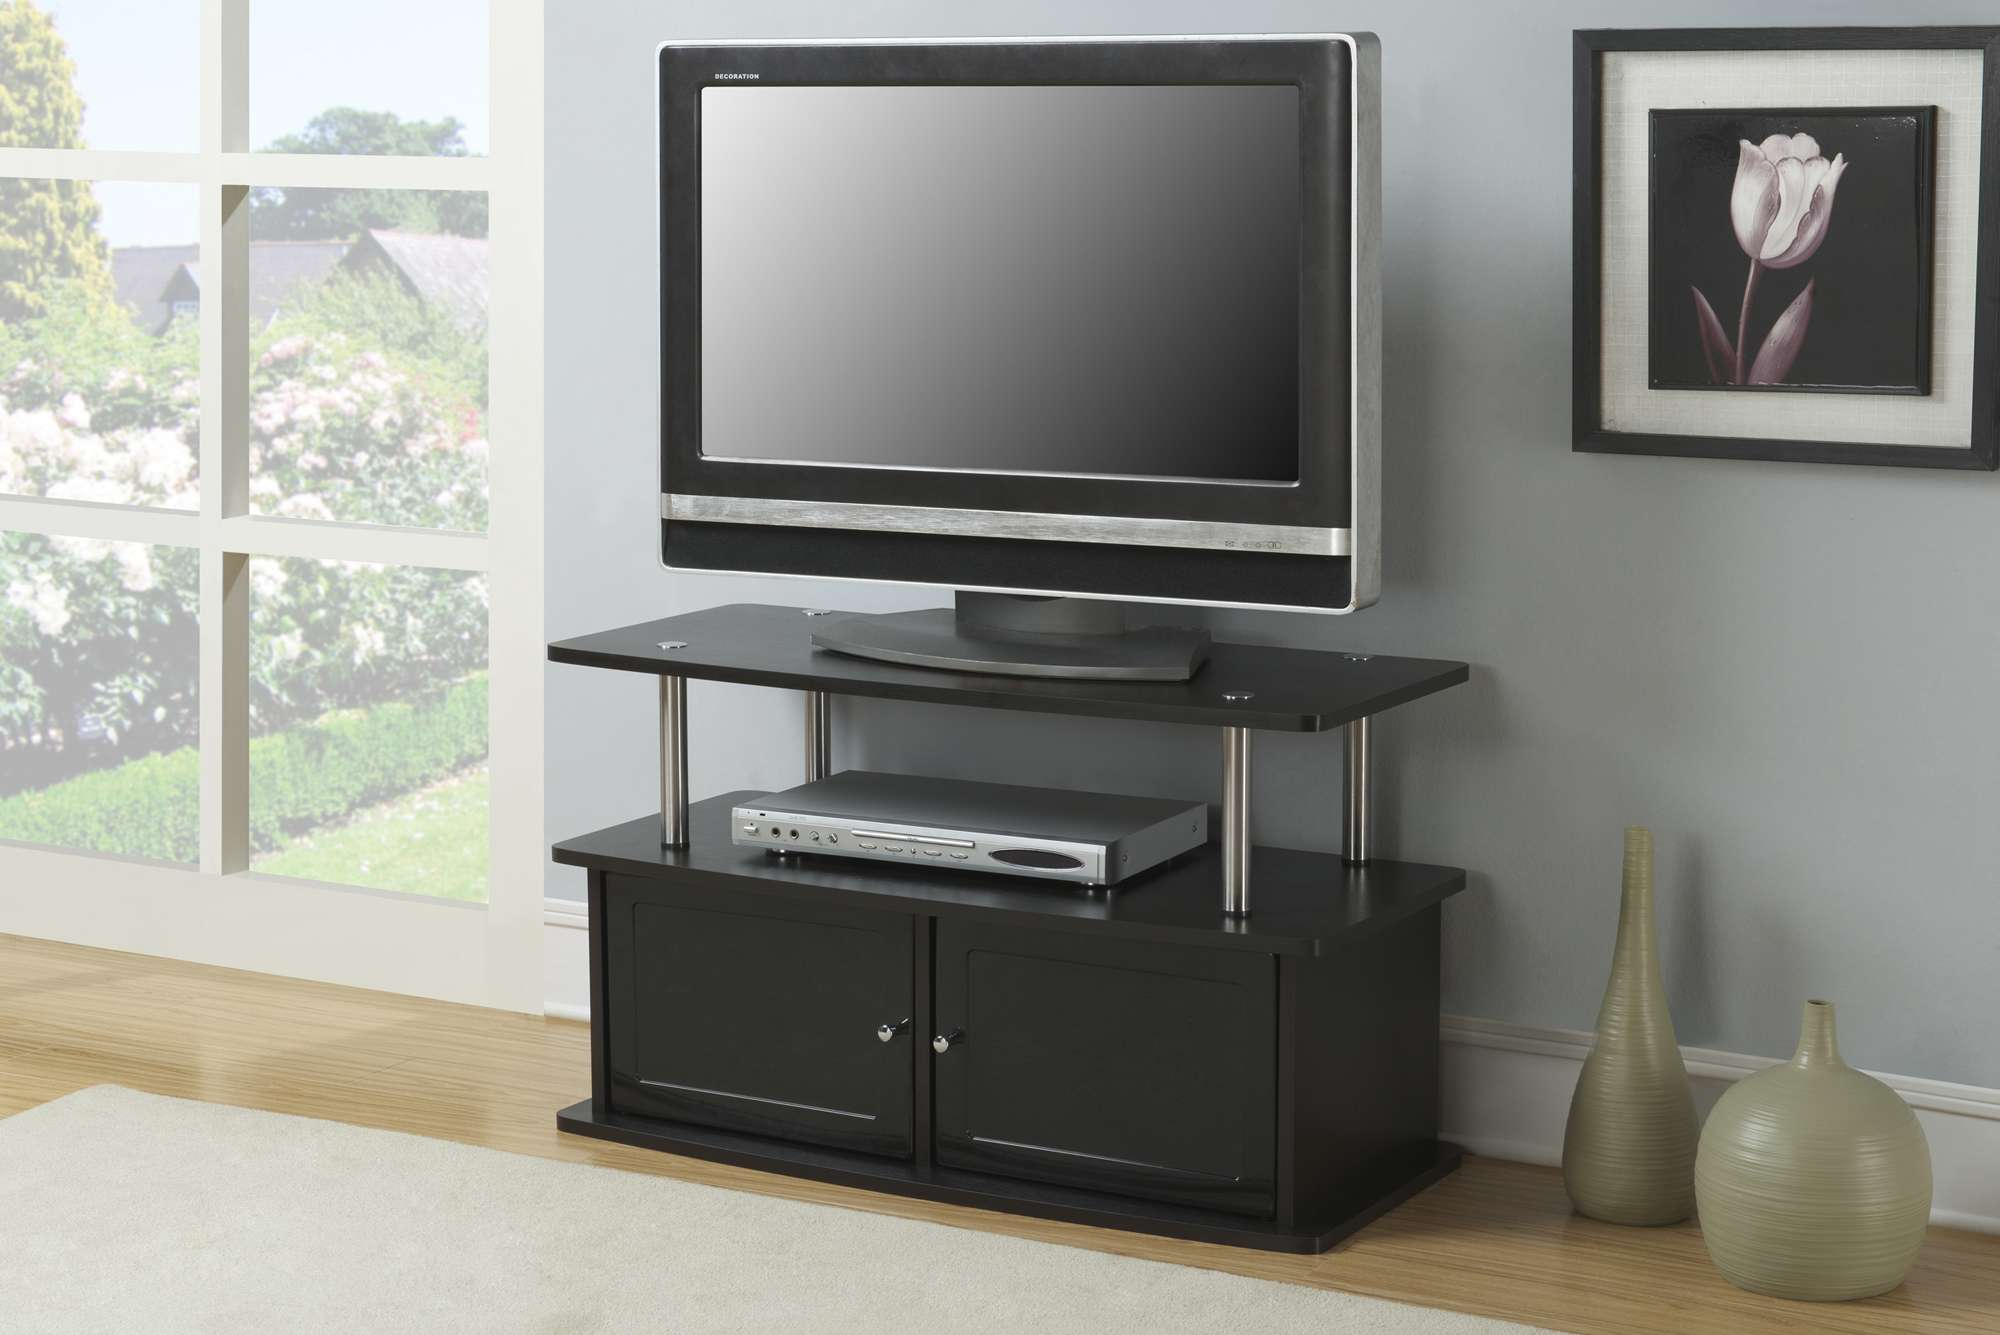 Convenience Concepts Espresso Tv Stand With 2 Cabinets Reviews